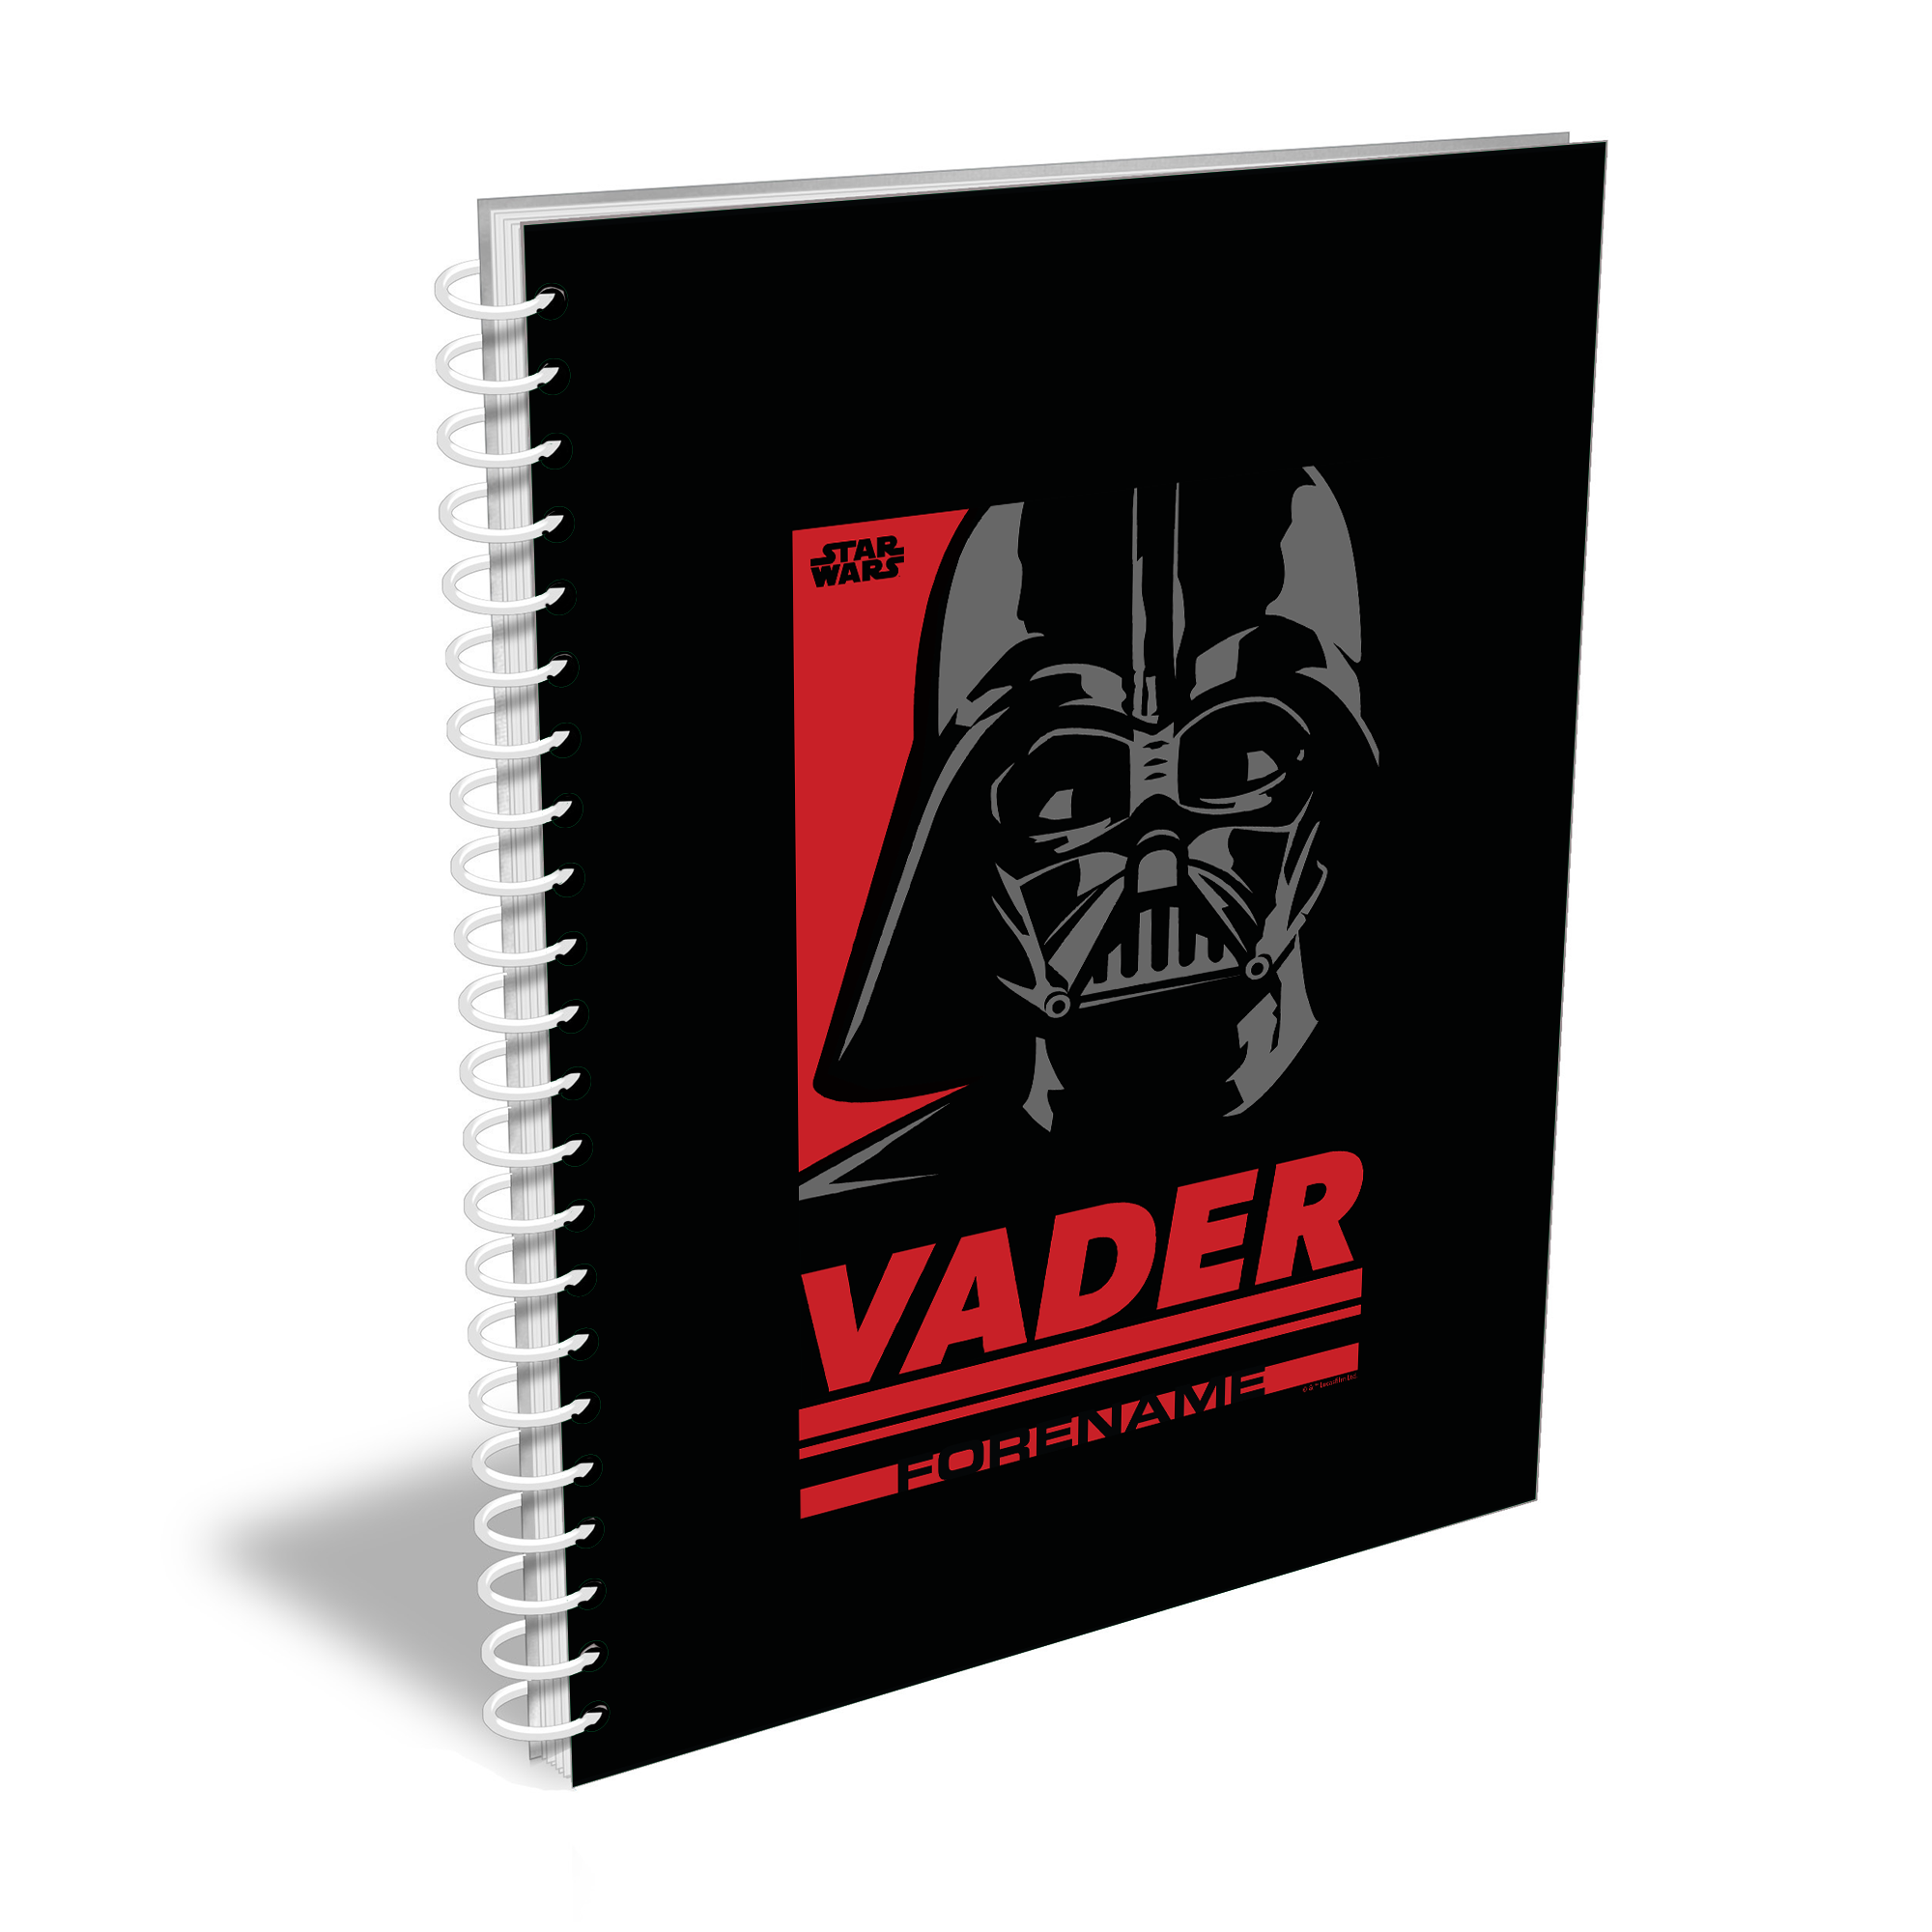 Star Wars Vader Pop Art A4 Notebook